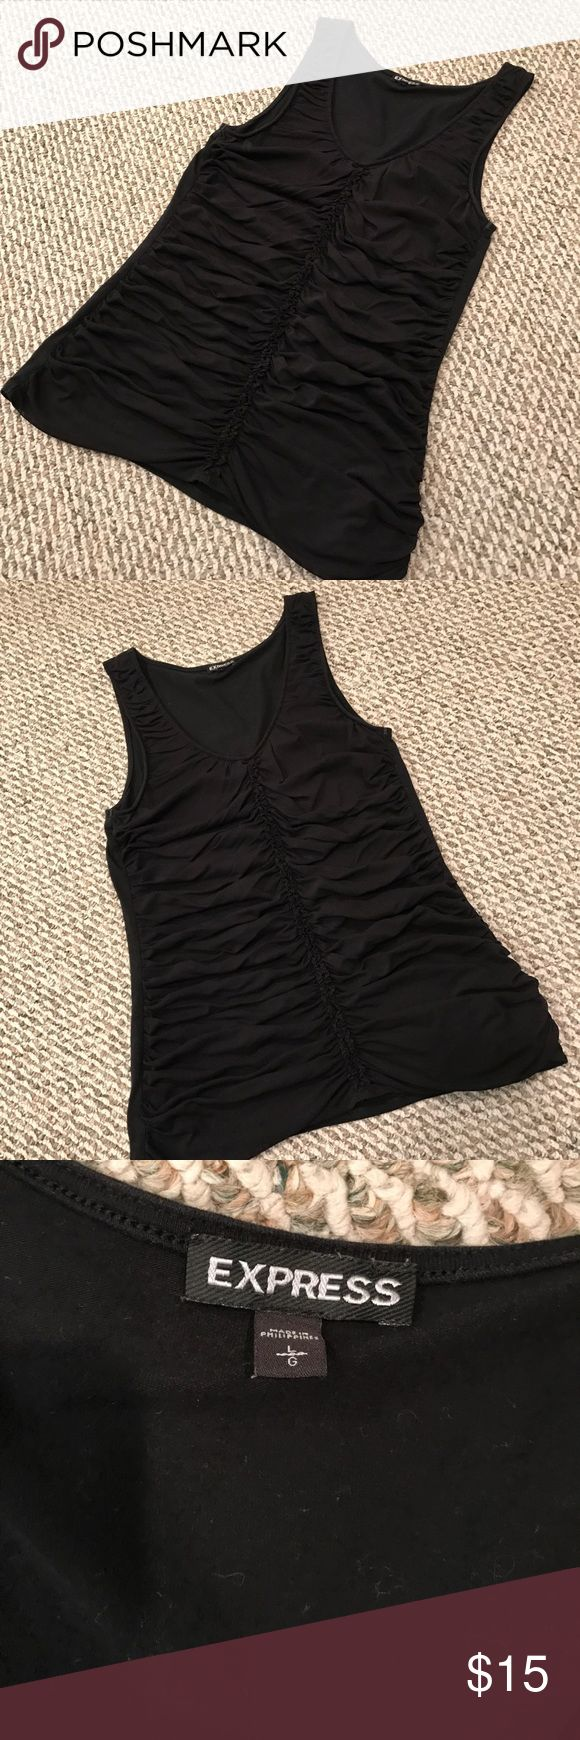 Black Scrunchy Tank Top Black Tank with scrunch detail in the front very flattering! Express Tops Tank Tops